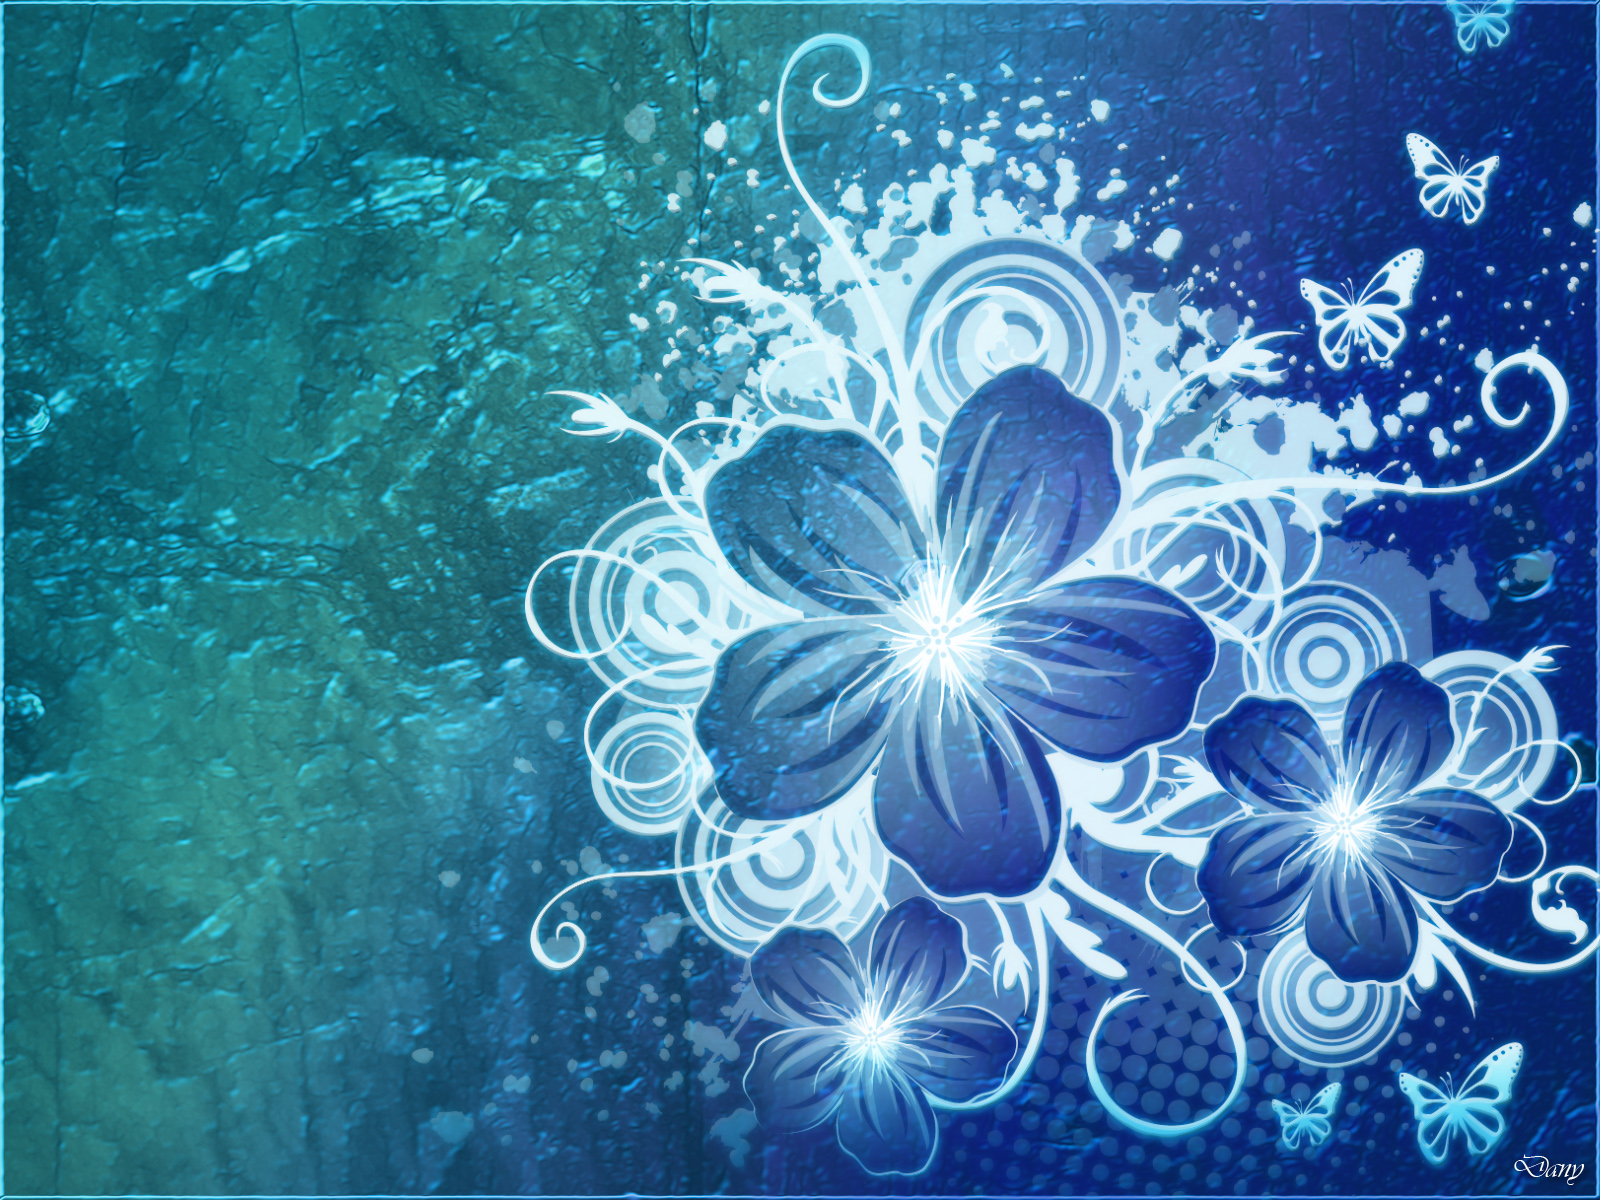 blue flower wallpaper   cynthia selahblue cynti19 Wallpaper 1600x1200